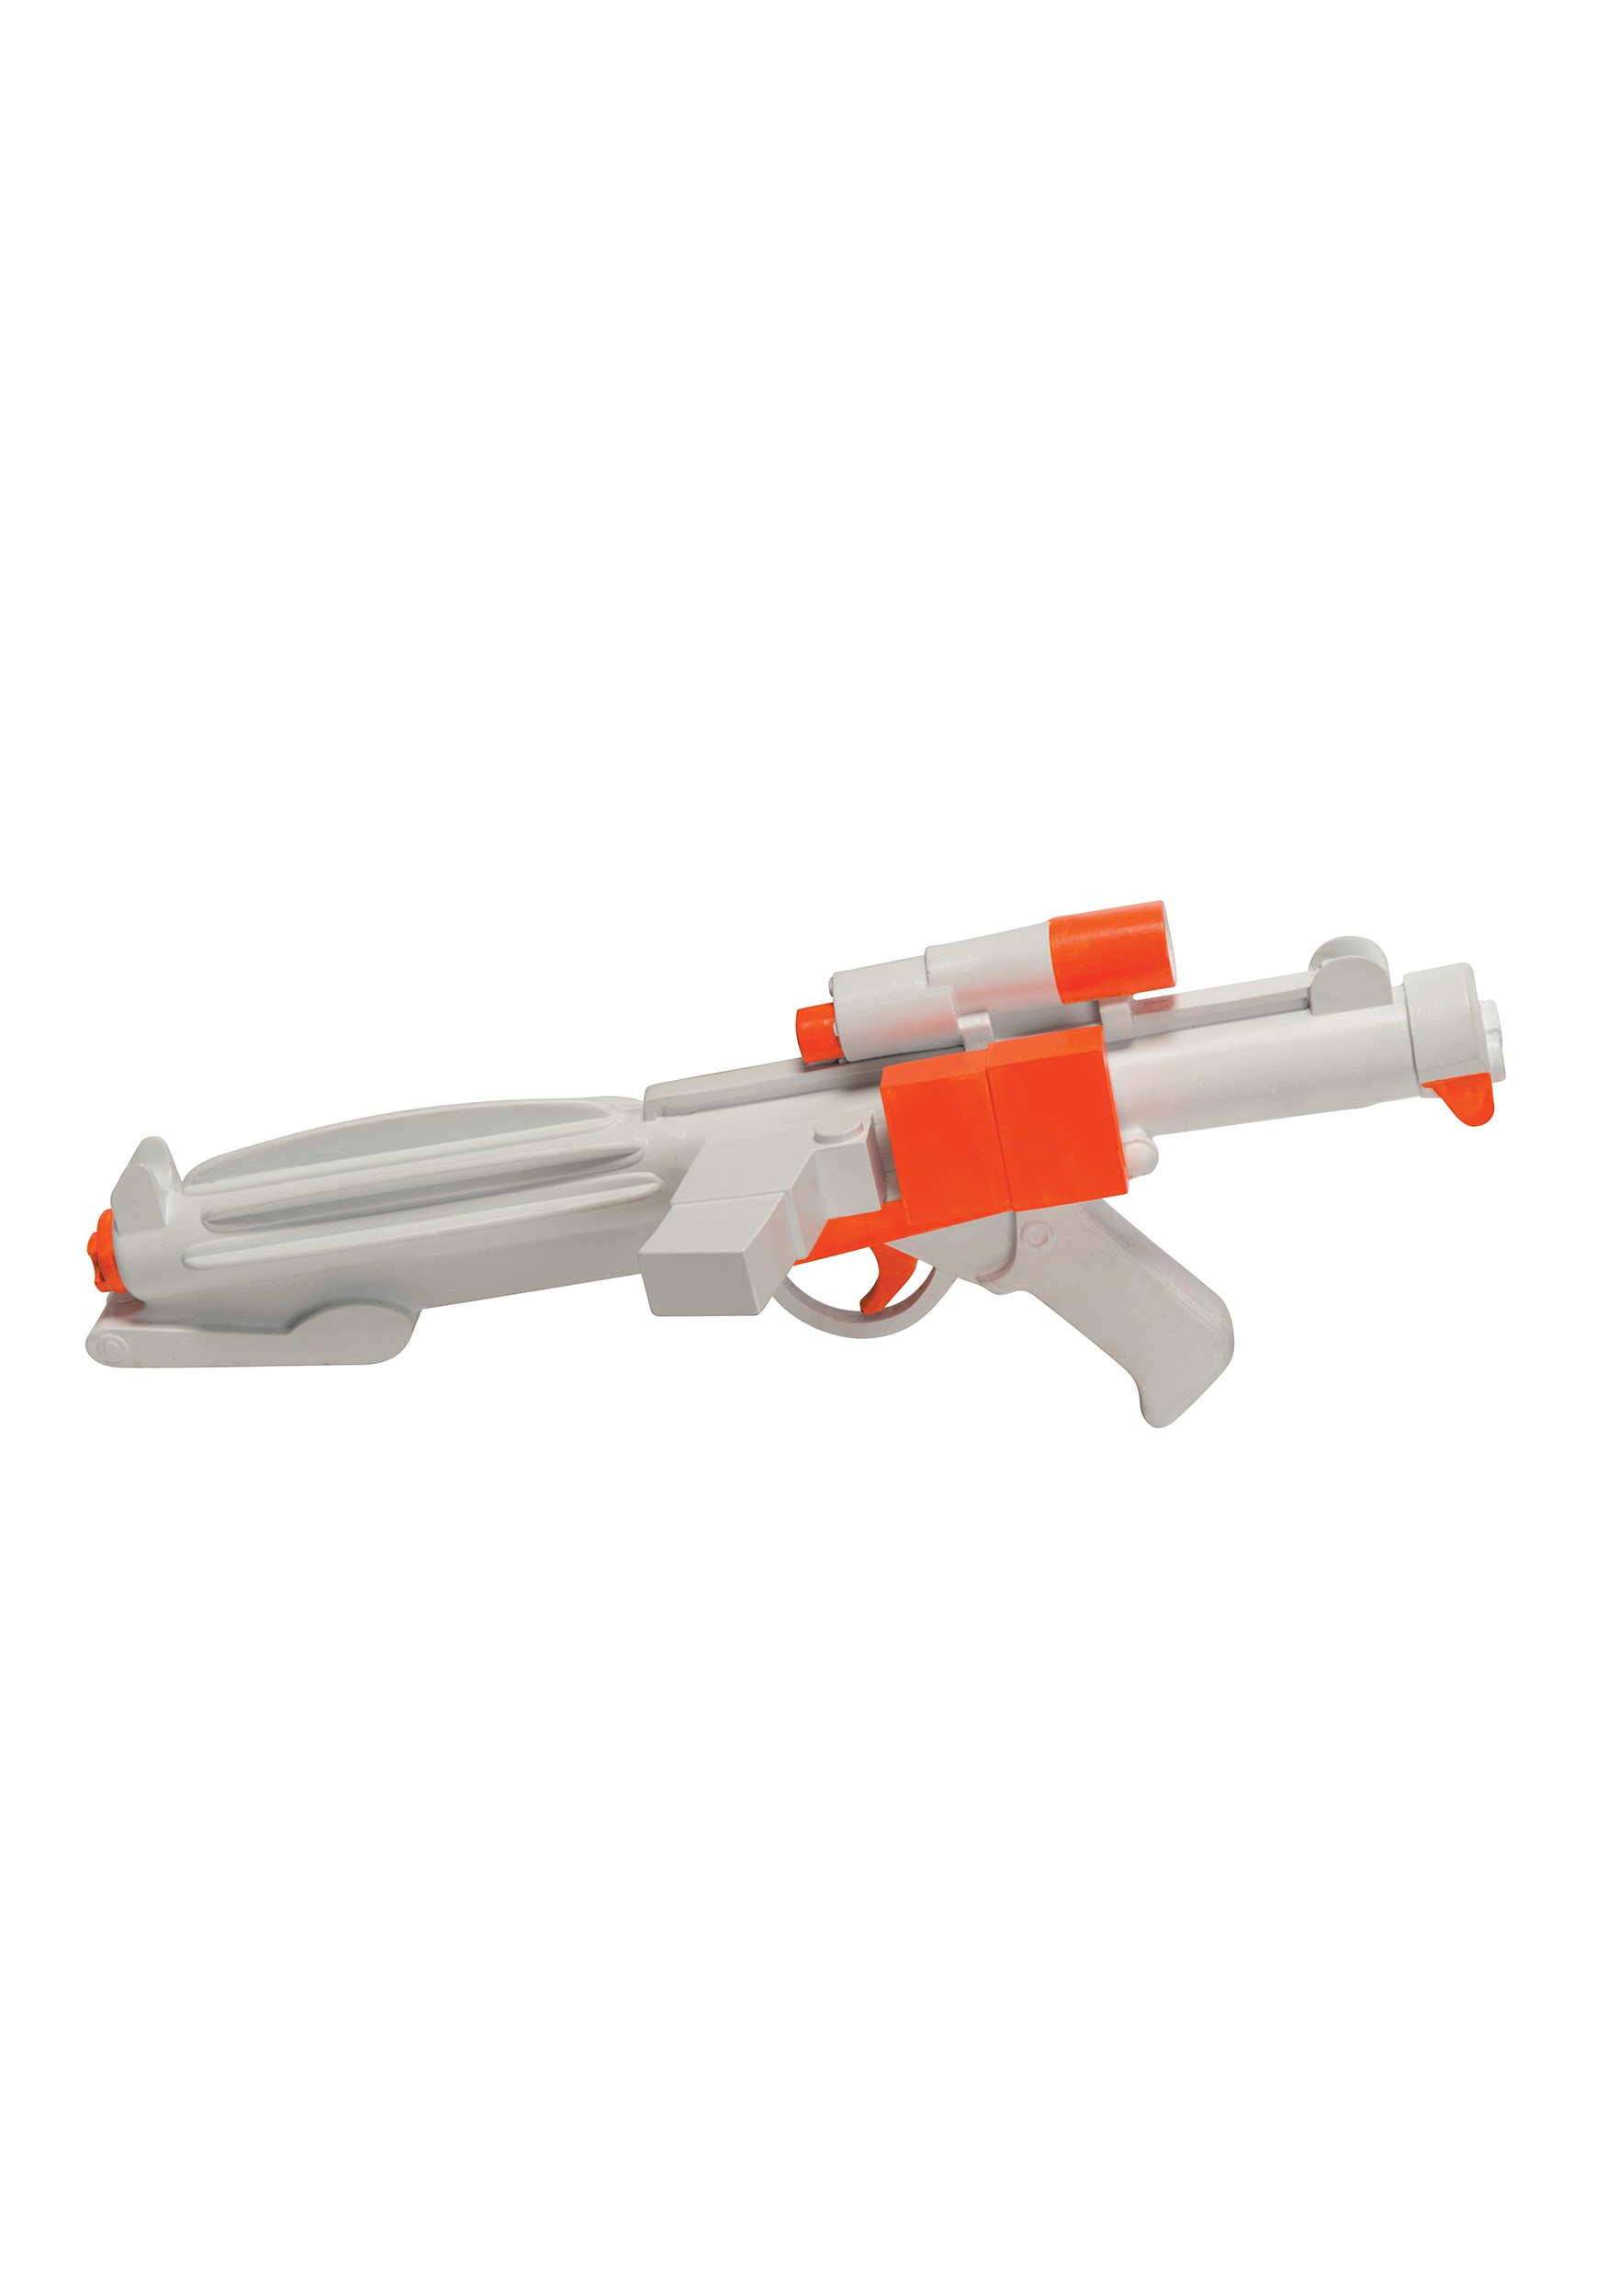 Star Wars Rebels Stormtrooper Blaster RU35507